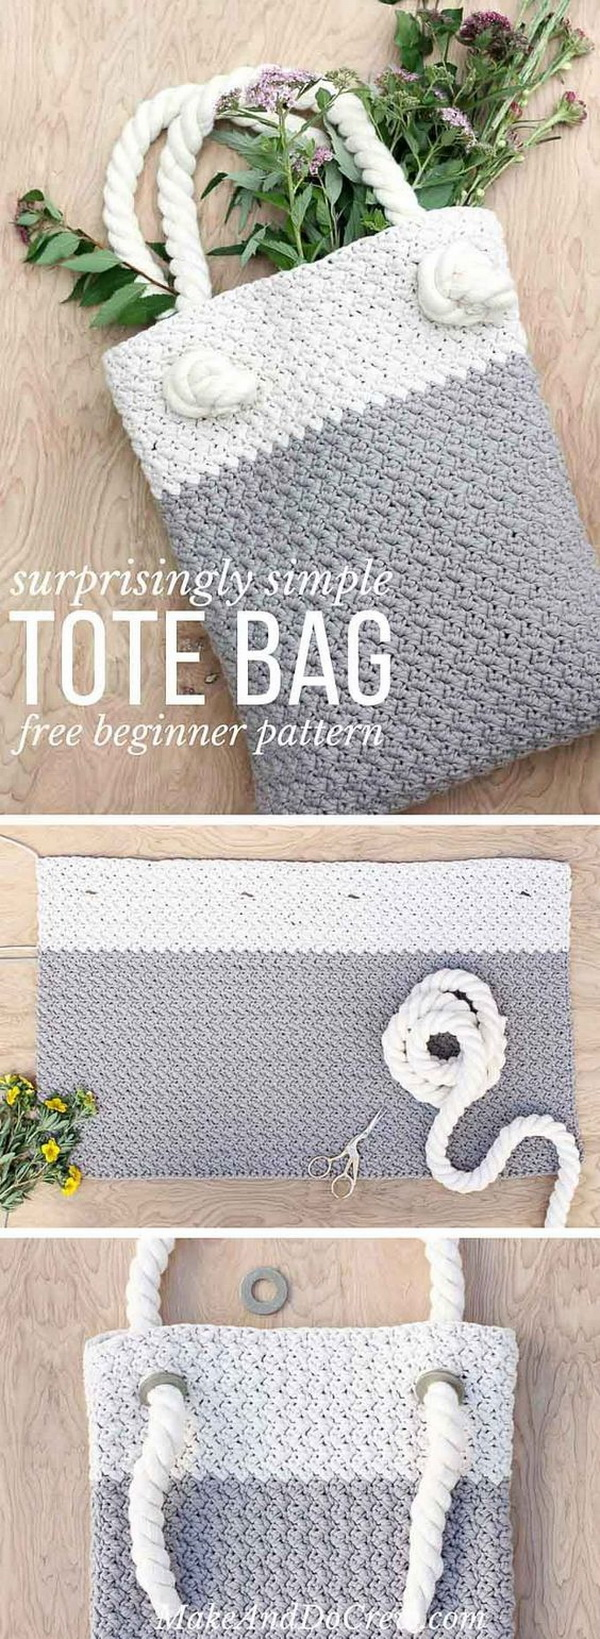 Crochet Market Bag For Beginners. This free crochet market tote bag is super simple to make and requires only single and double crochet stitches. It can be the perfect modern tote bag for market or used as a oversized purse.